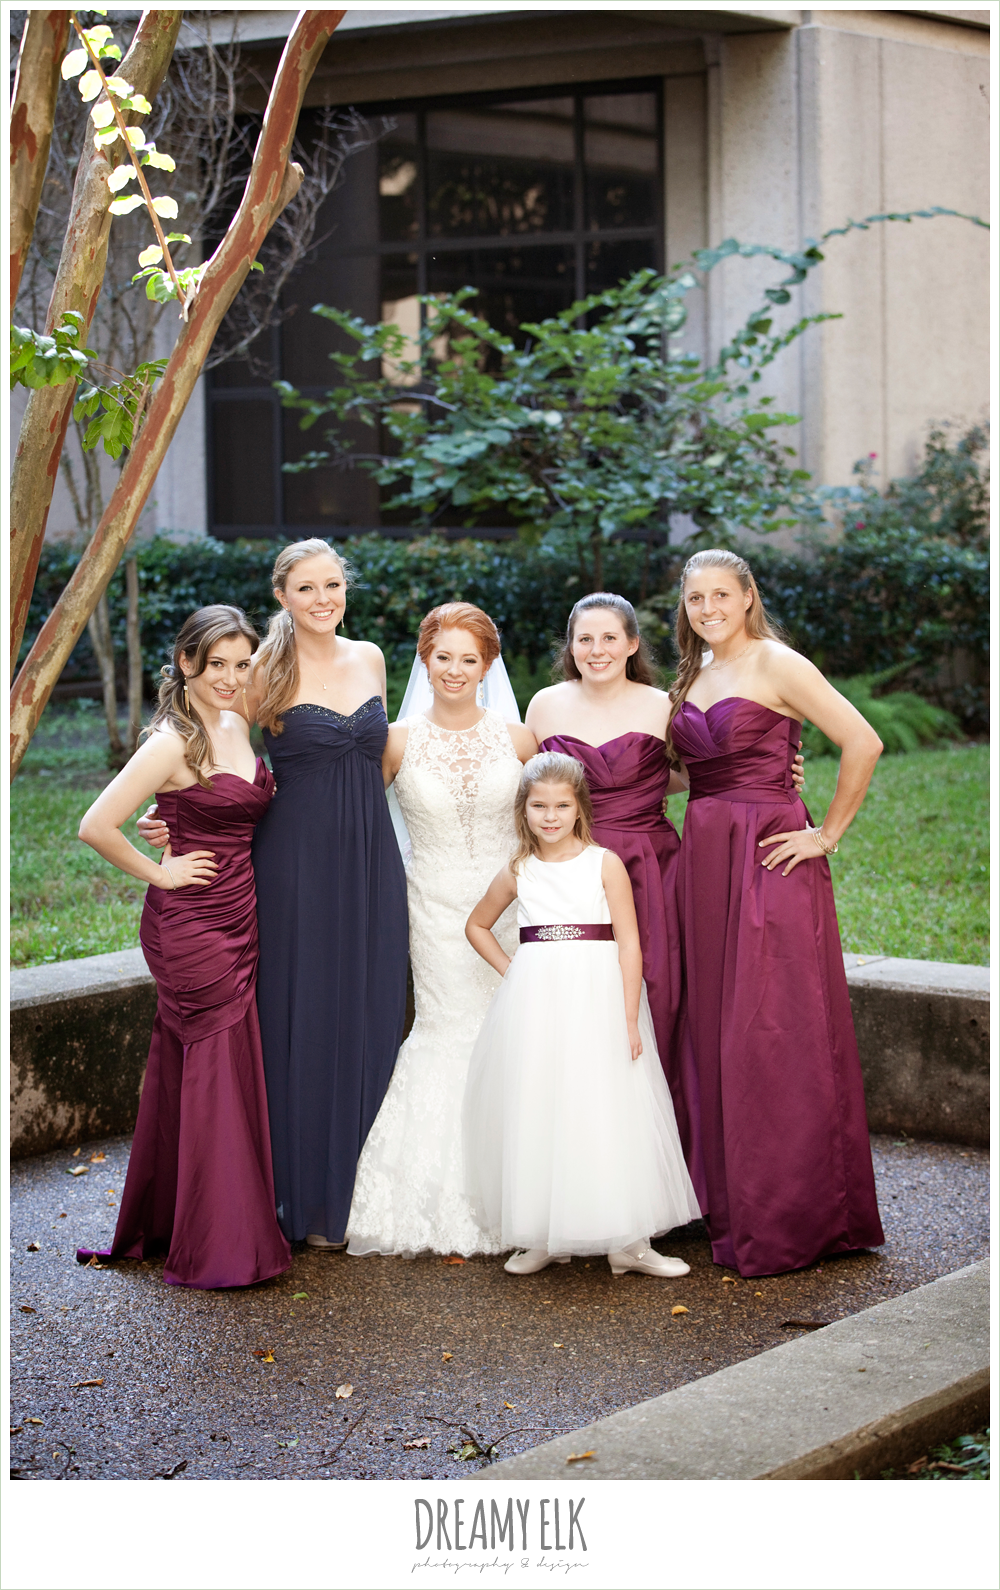 hilton hotel, university of houston, sangria strapless bridesmaids dresses, high-necked lace wedding dress, dreamy elk photography and design